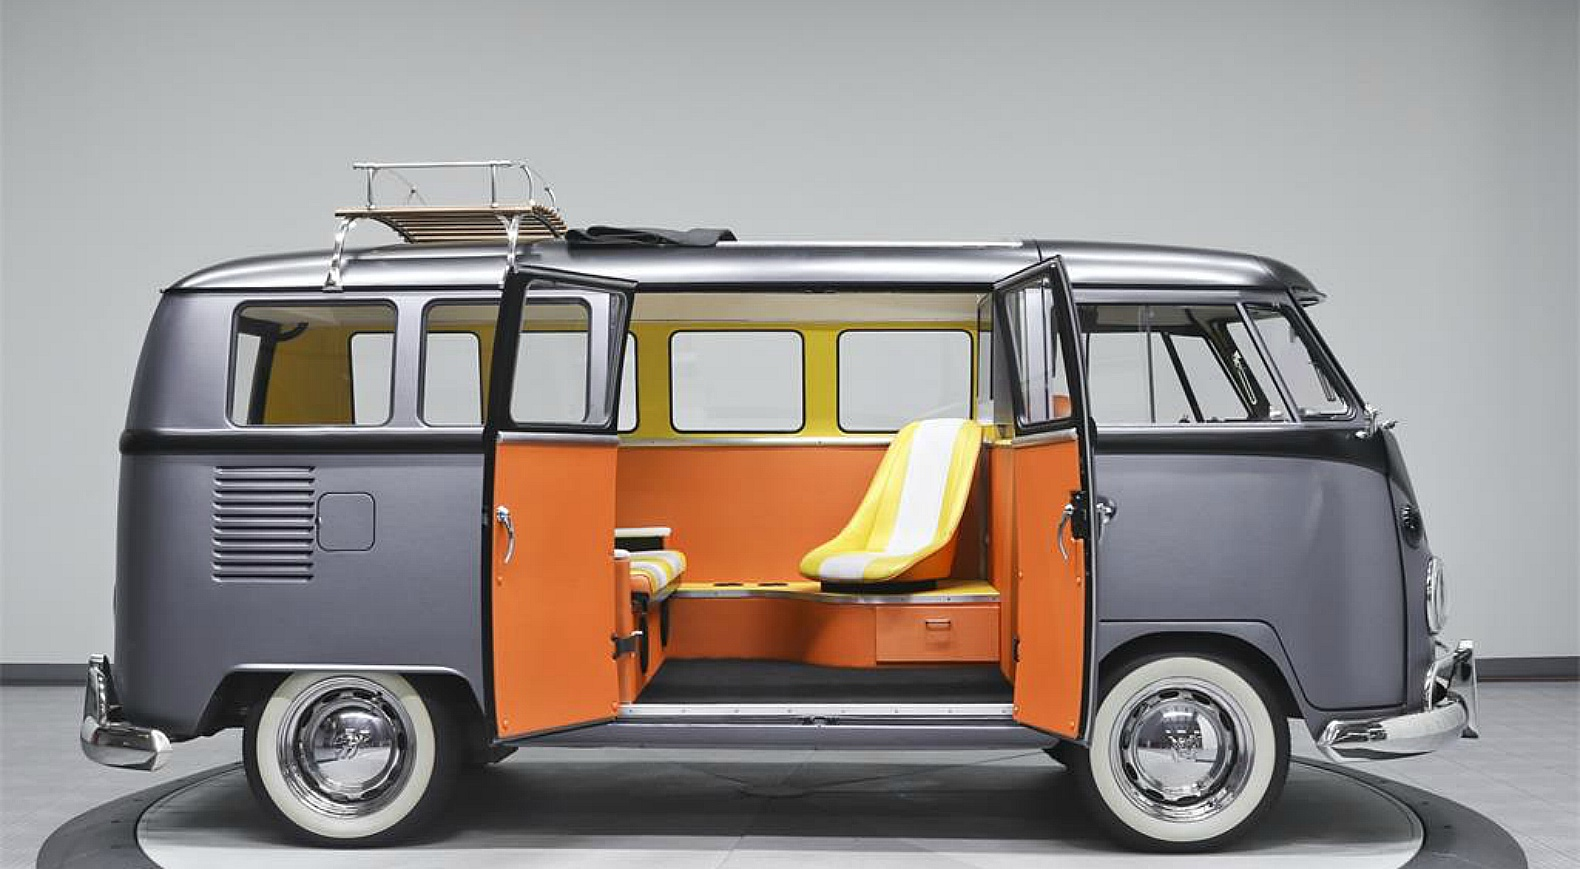 1967 Volkswagen Camper Transformed Into Back To The Future Time Machine